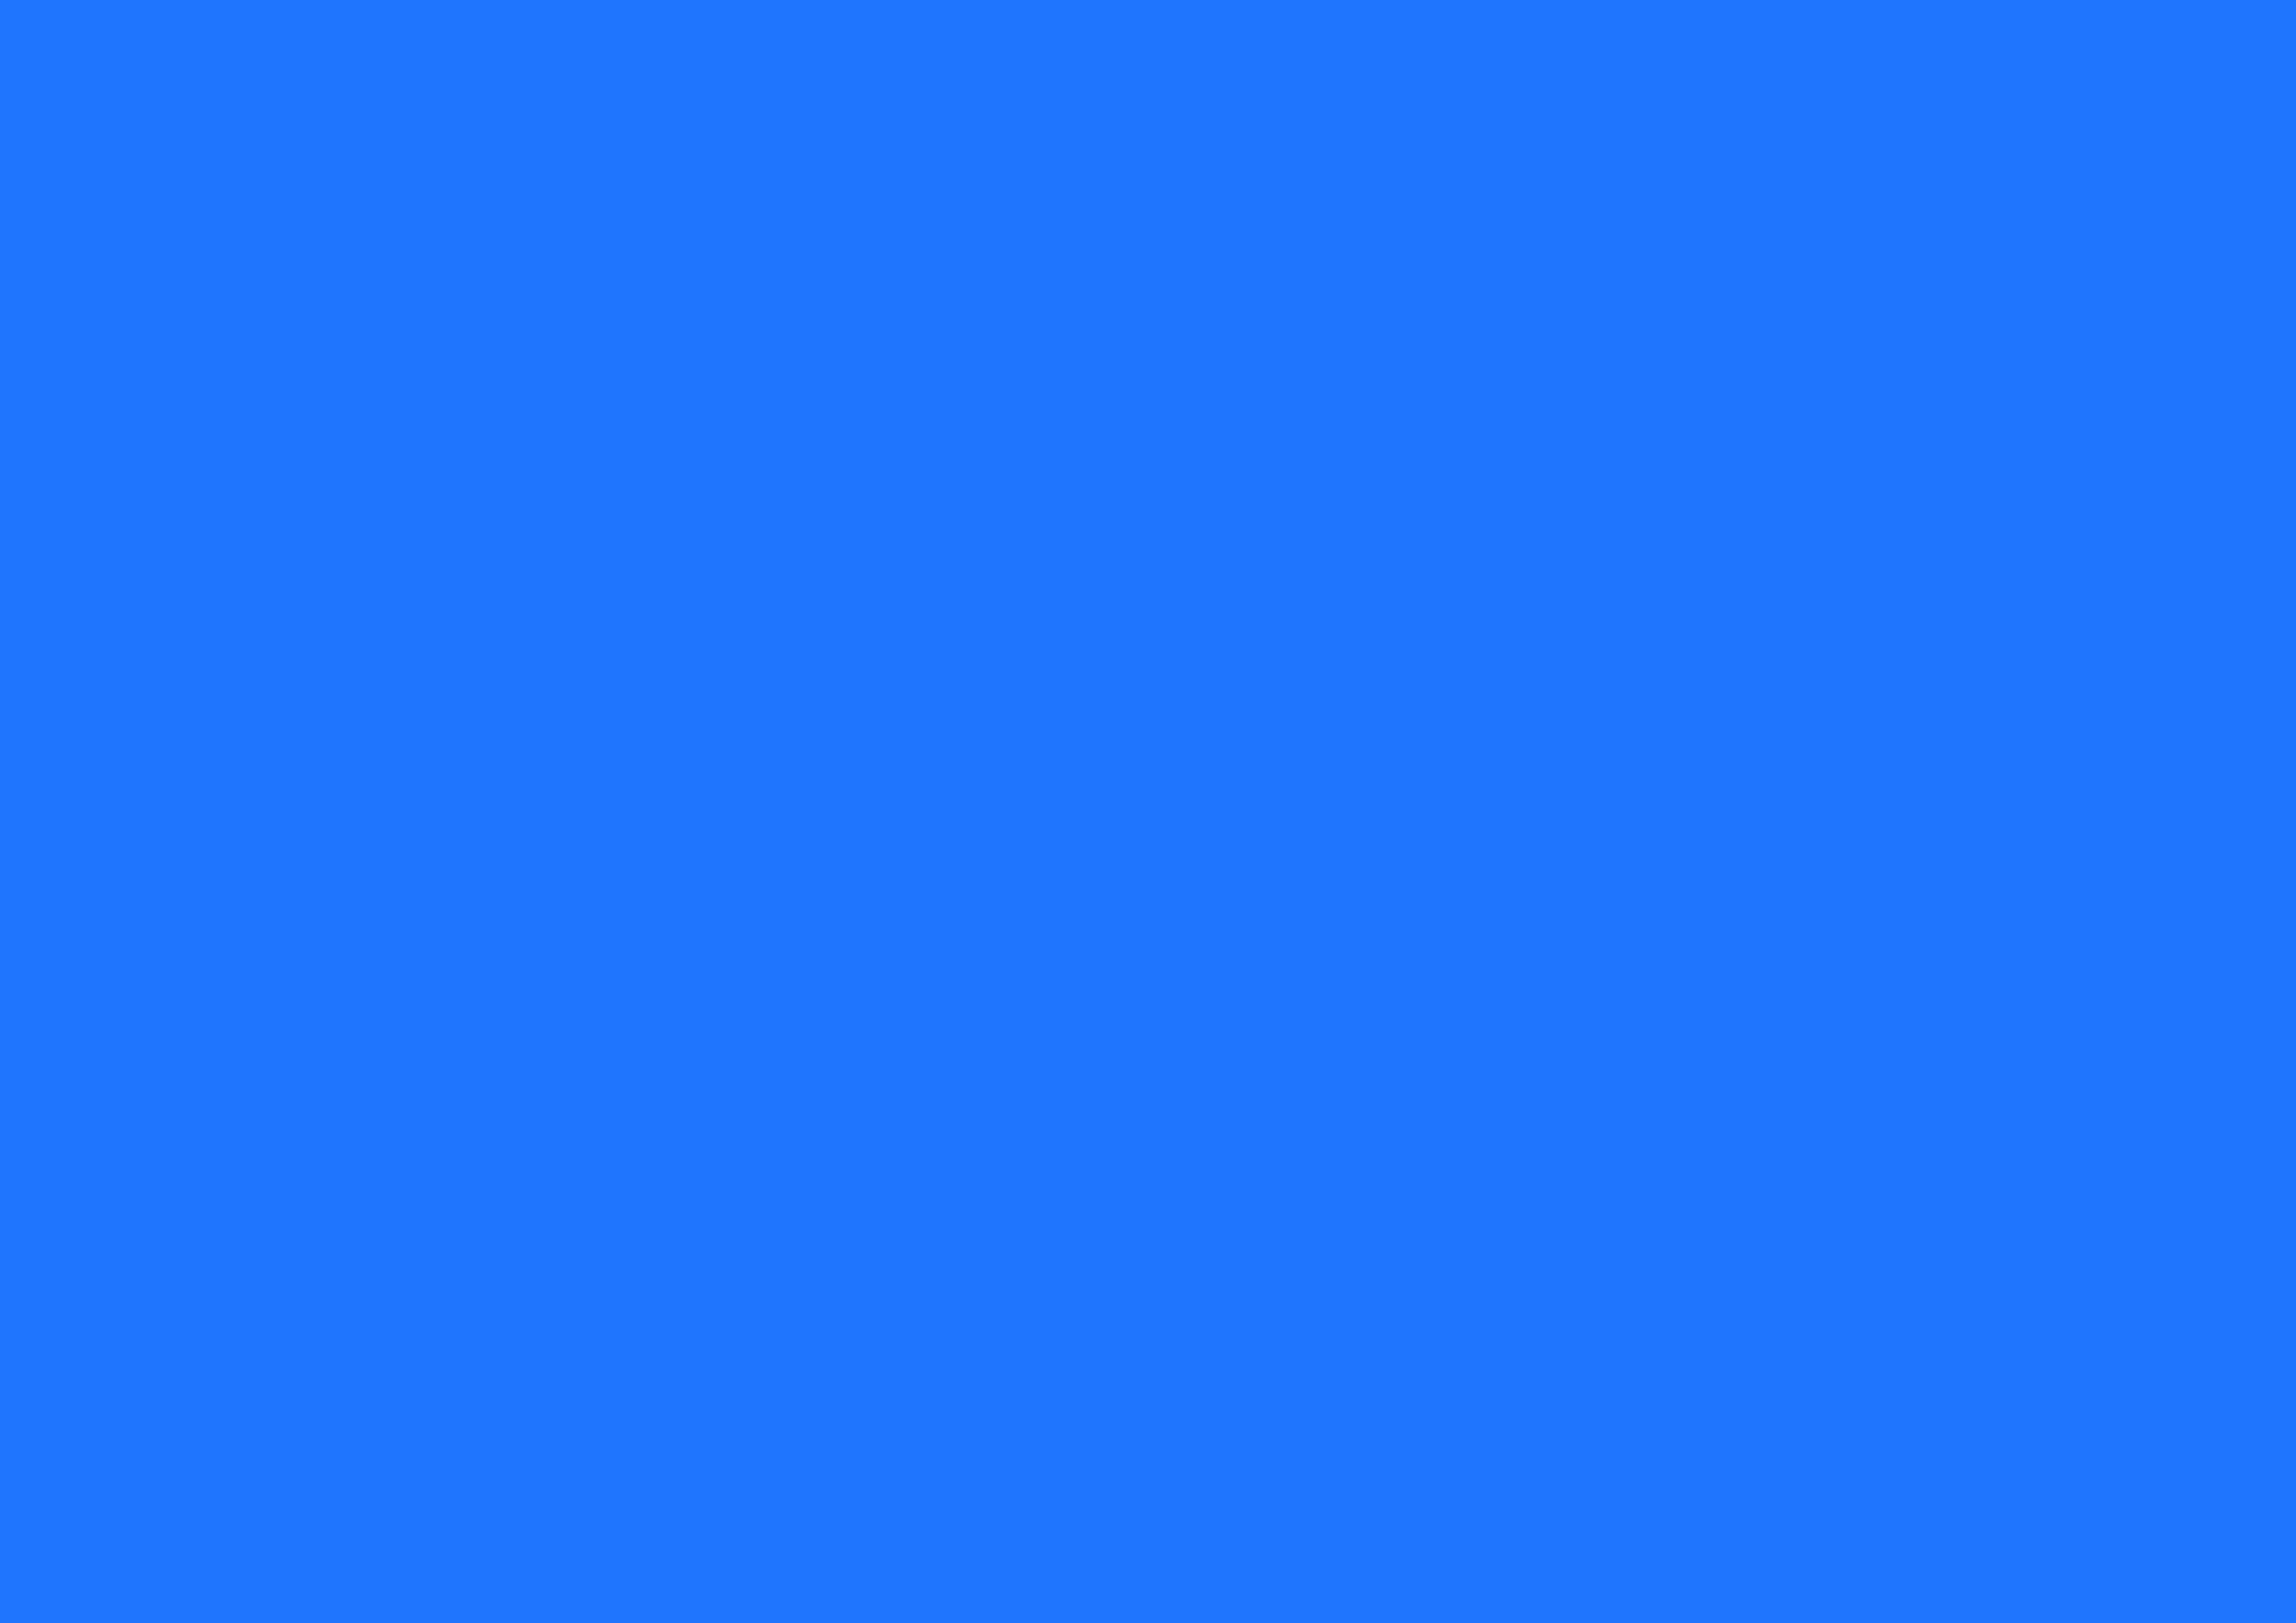 3508x2480 Blue Crayola Solid Color Background